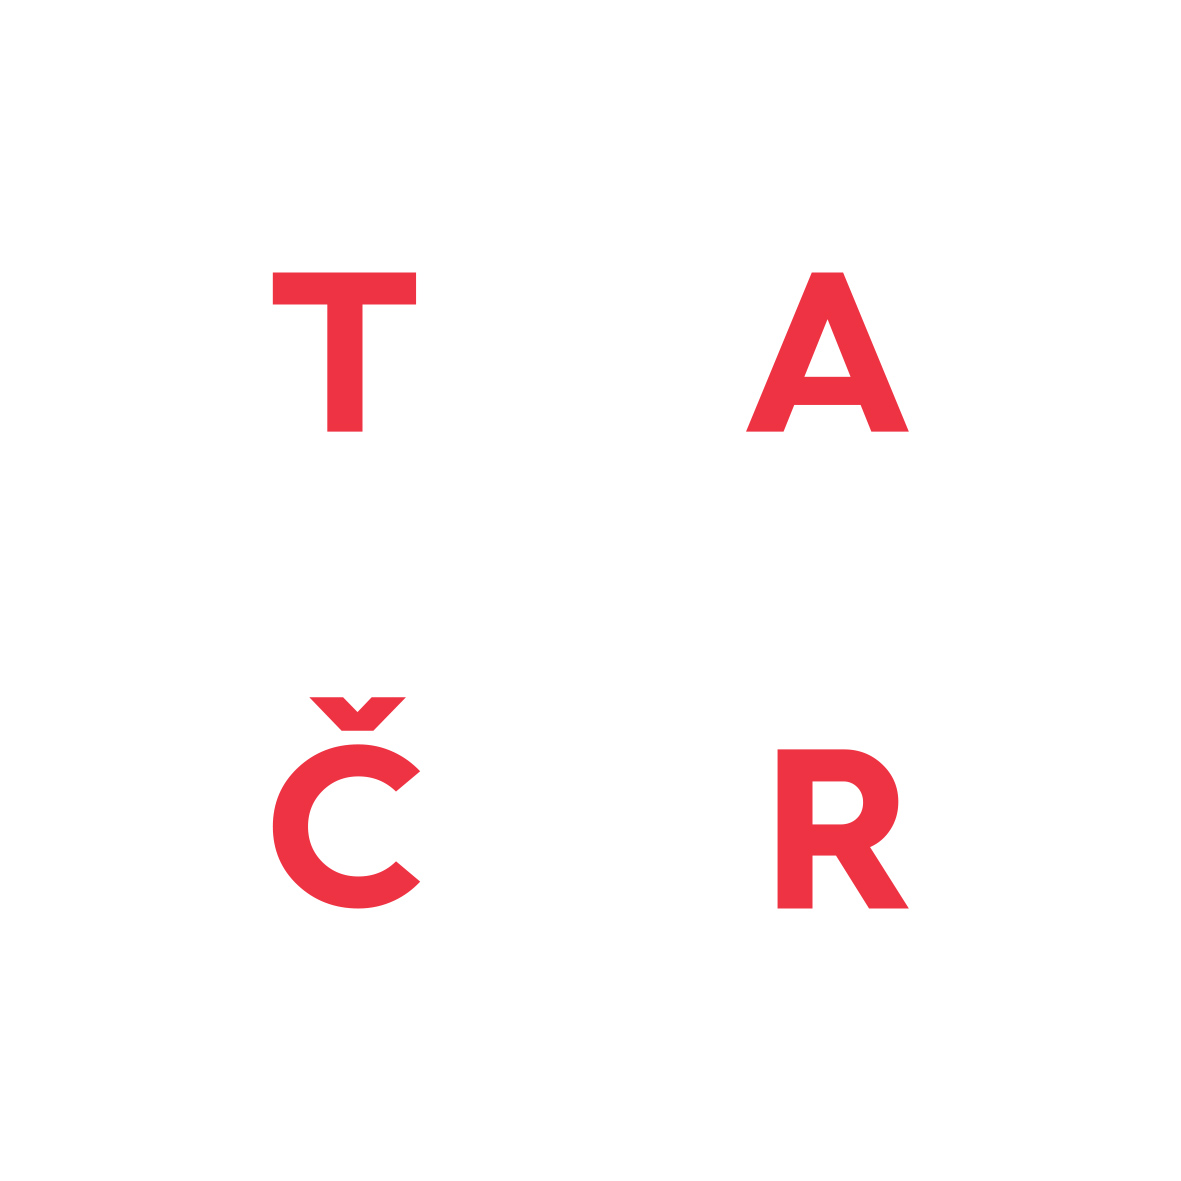 TACR_logo_white_red.jpg